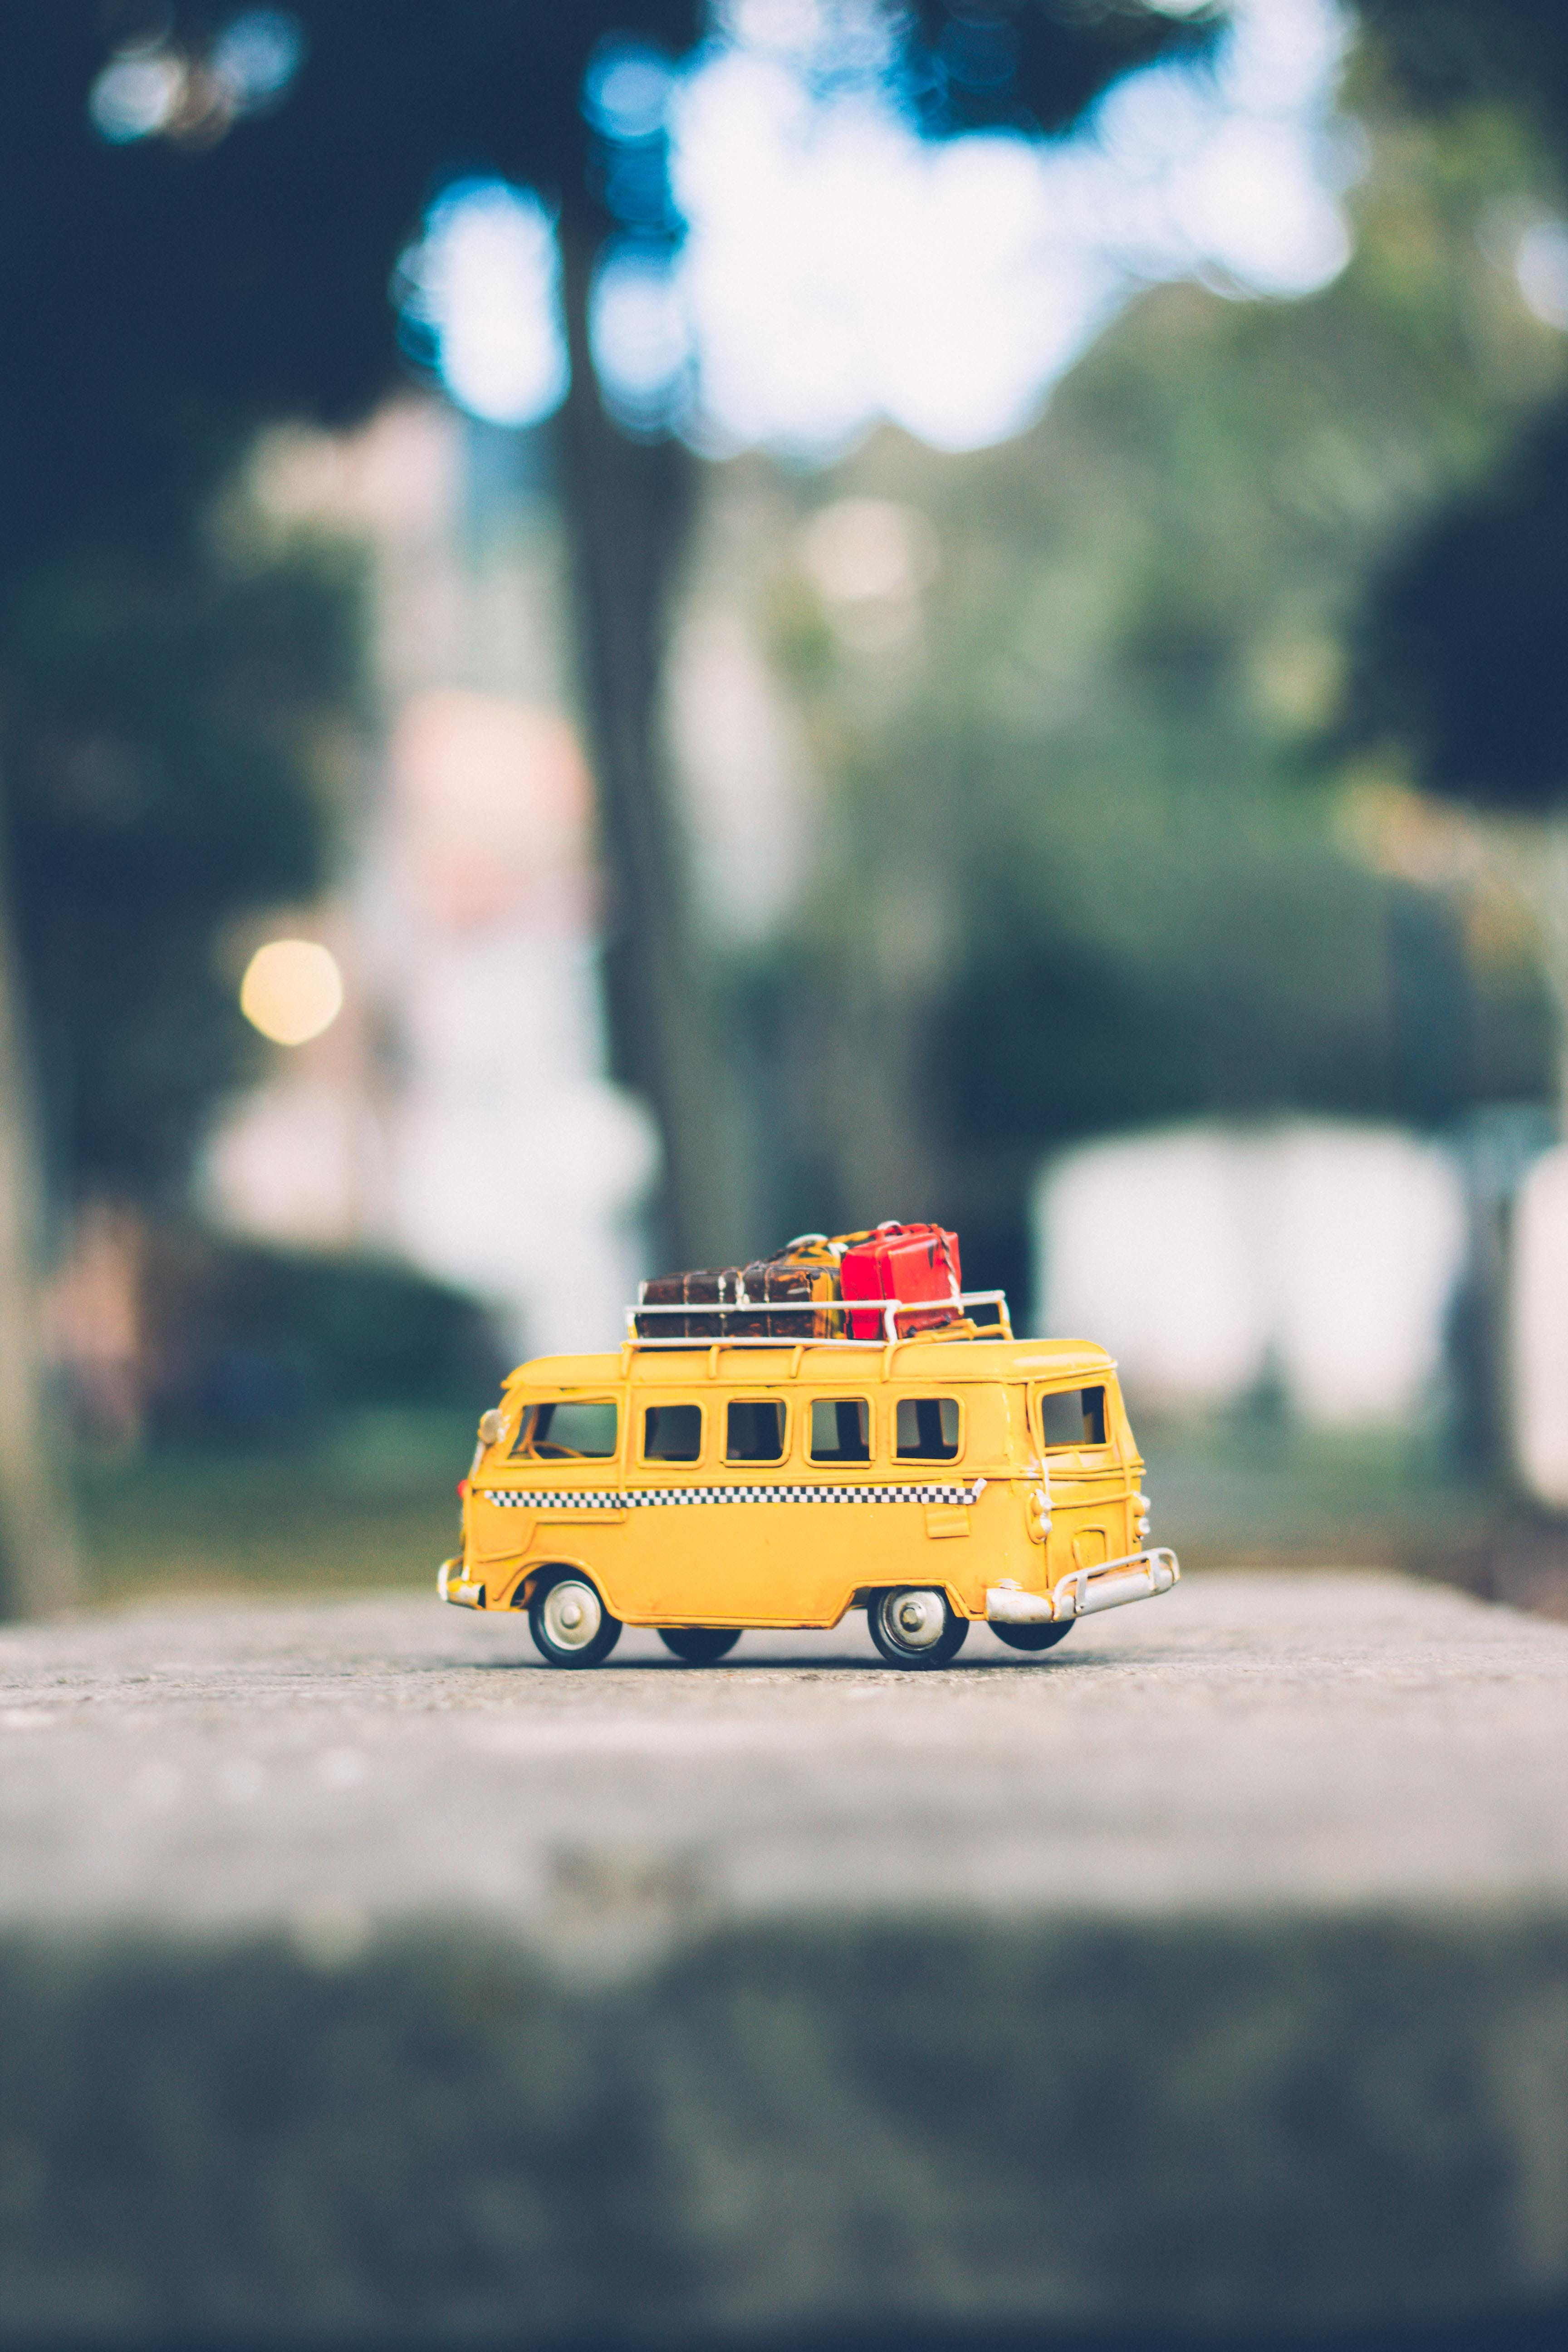 Free stock photo of blurred, miniature toy, taxi, toy